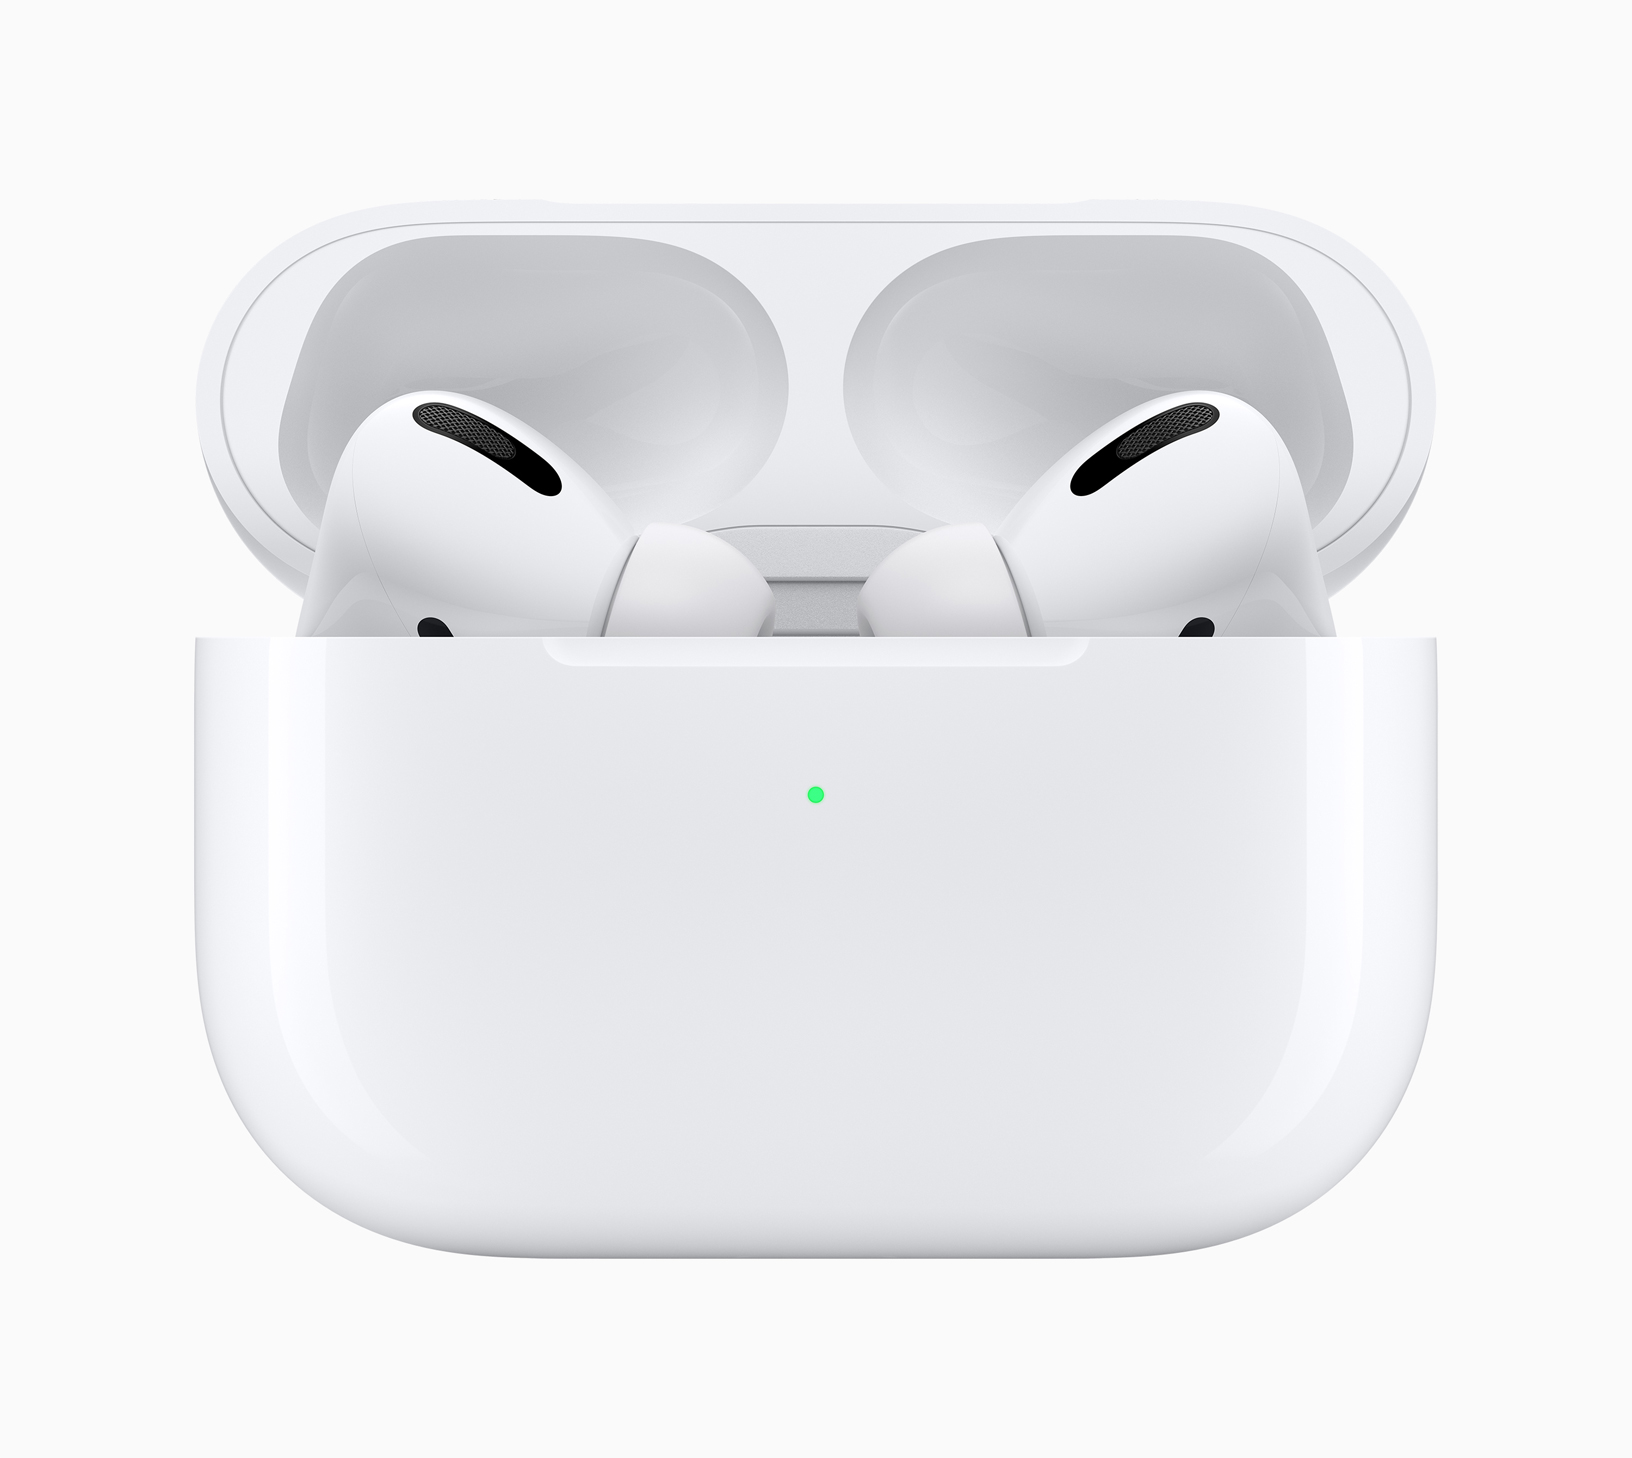 Apple_AirPods-Pro_New-Design-Case-And-AirPods-Pro_102819_big